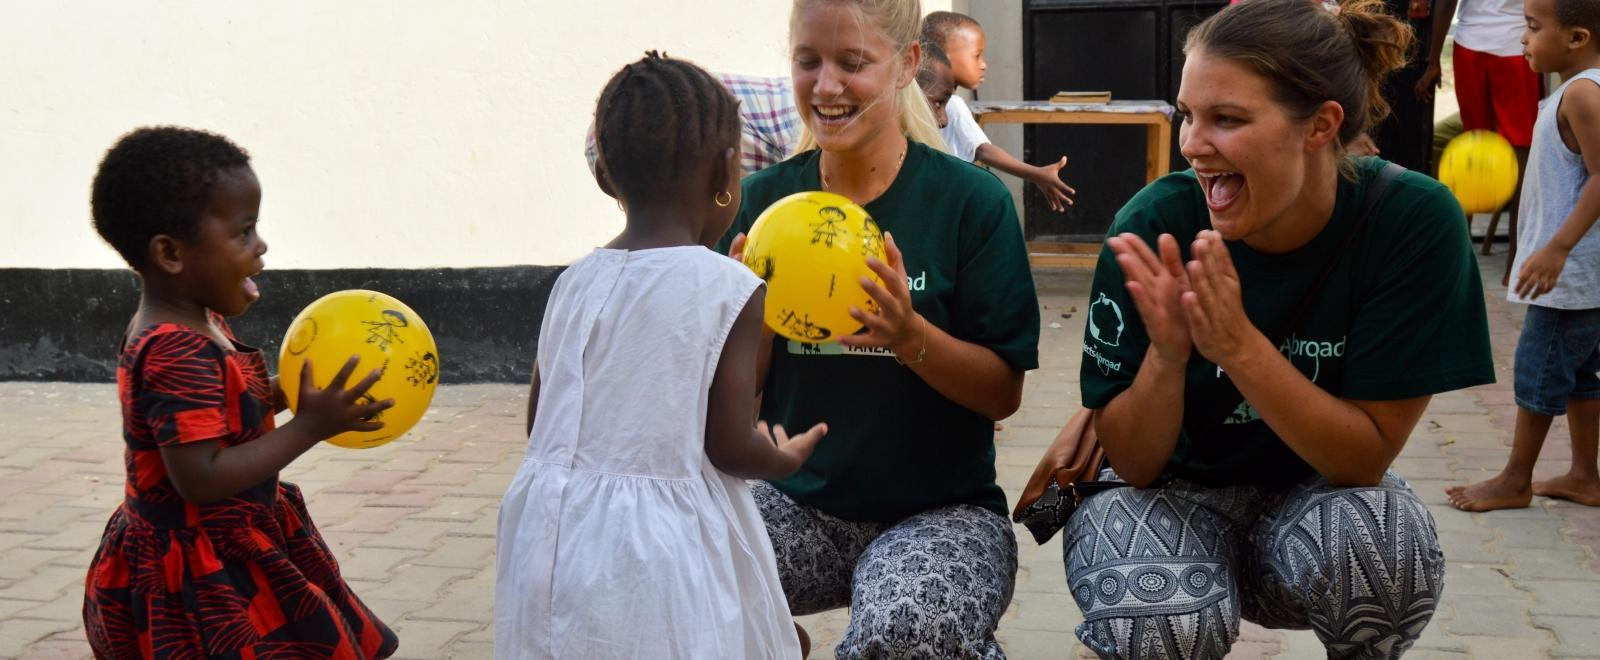 Projects Abroad volunteers play a ball game with children from a nursery school rather than an orphanage abroad.